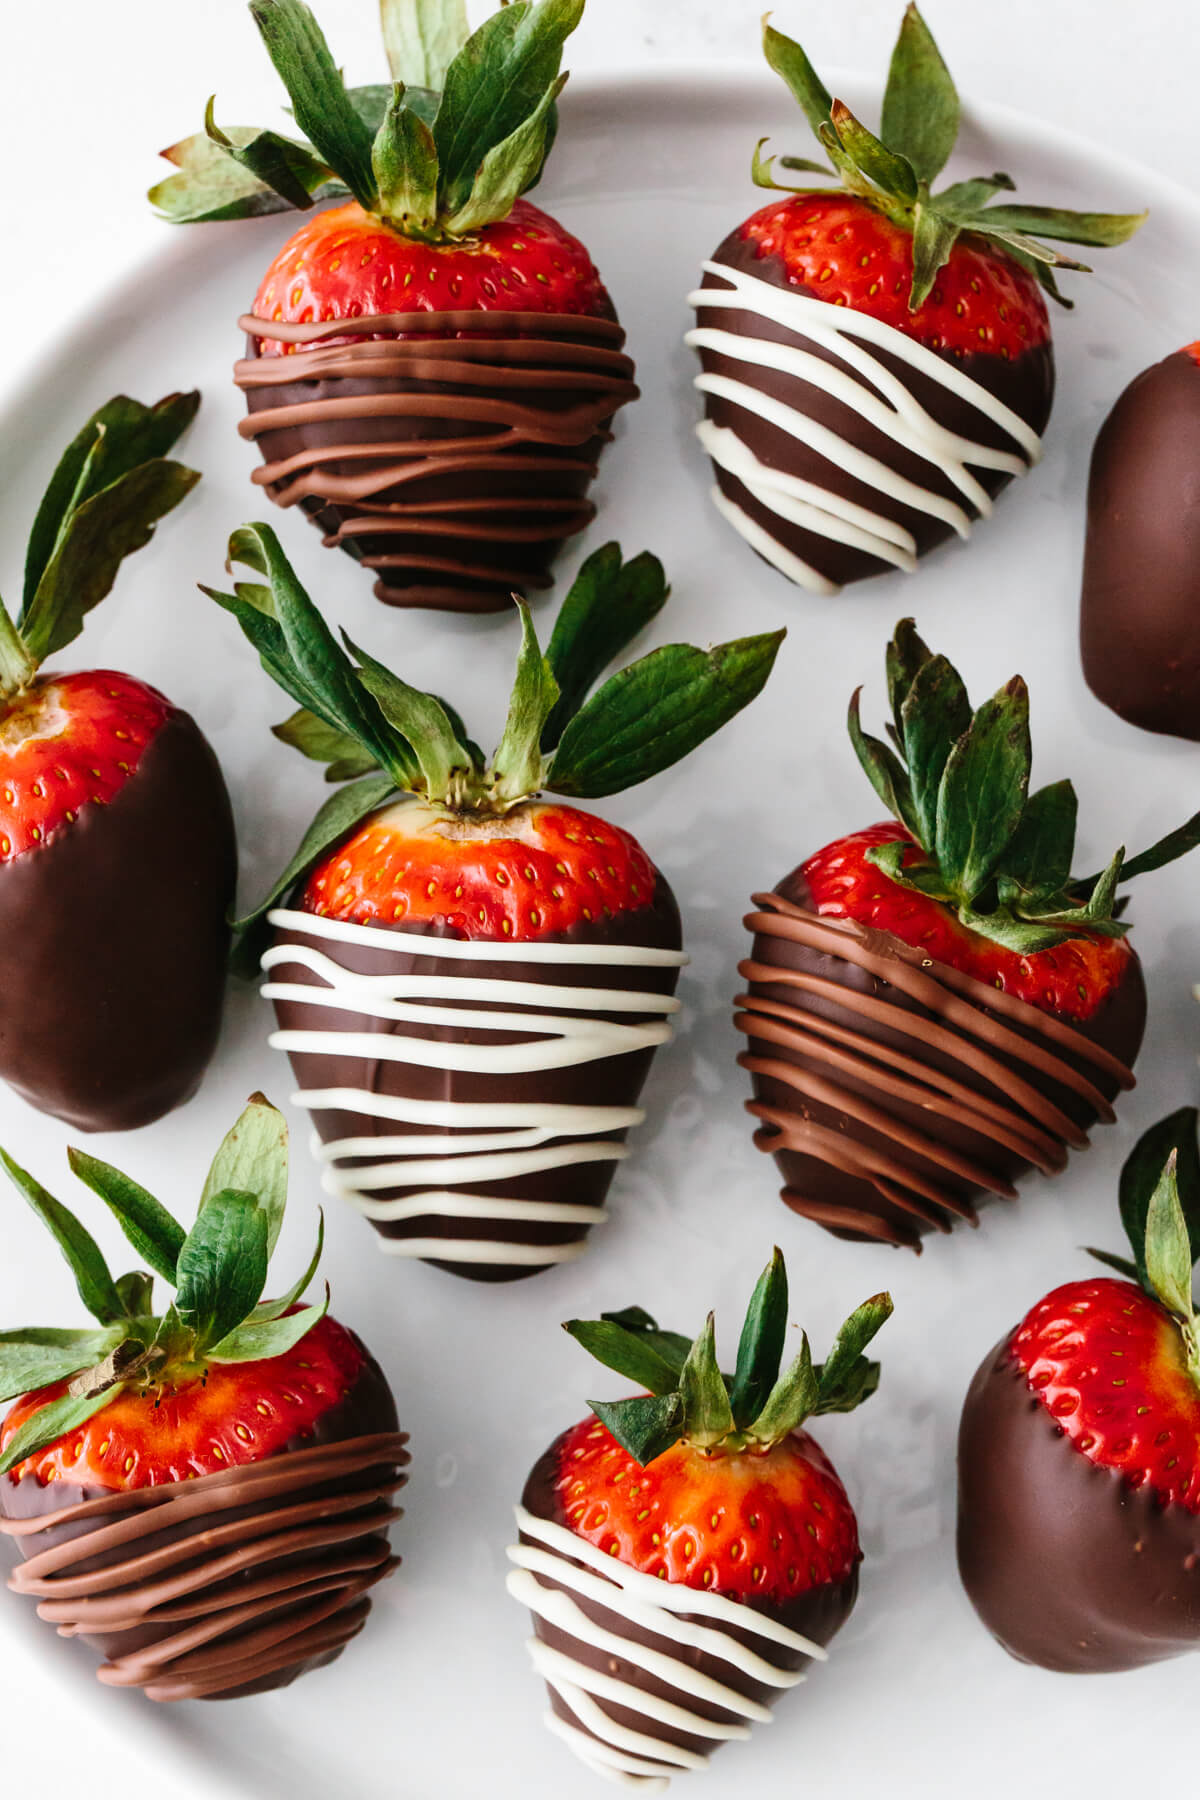 Chocolate covered strawberry drizzled in white and milk chocolate.